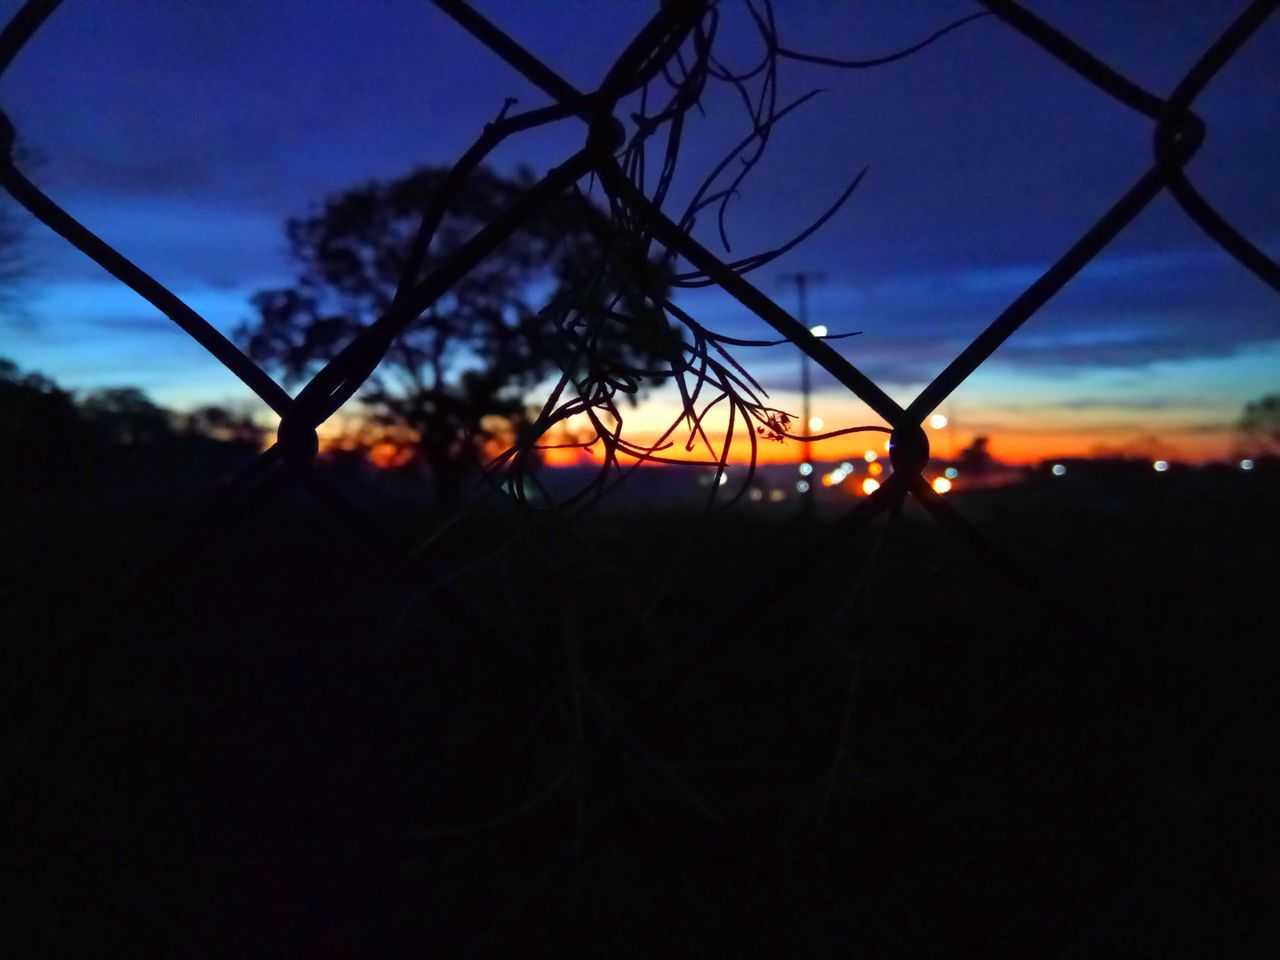 sunset, silhouette, sky, dusk, nature, no people, outdoors, beauty in nature, landscape, close-up, tree, scenics, day